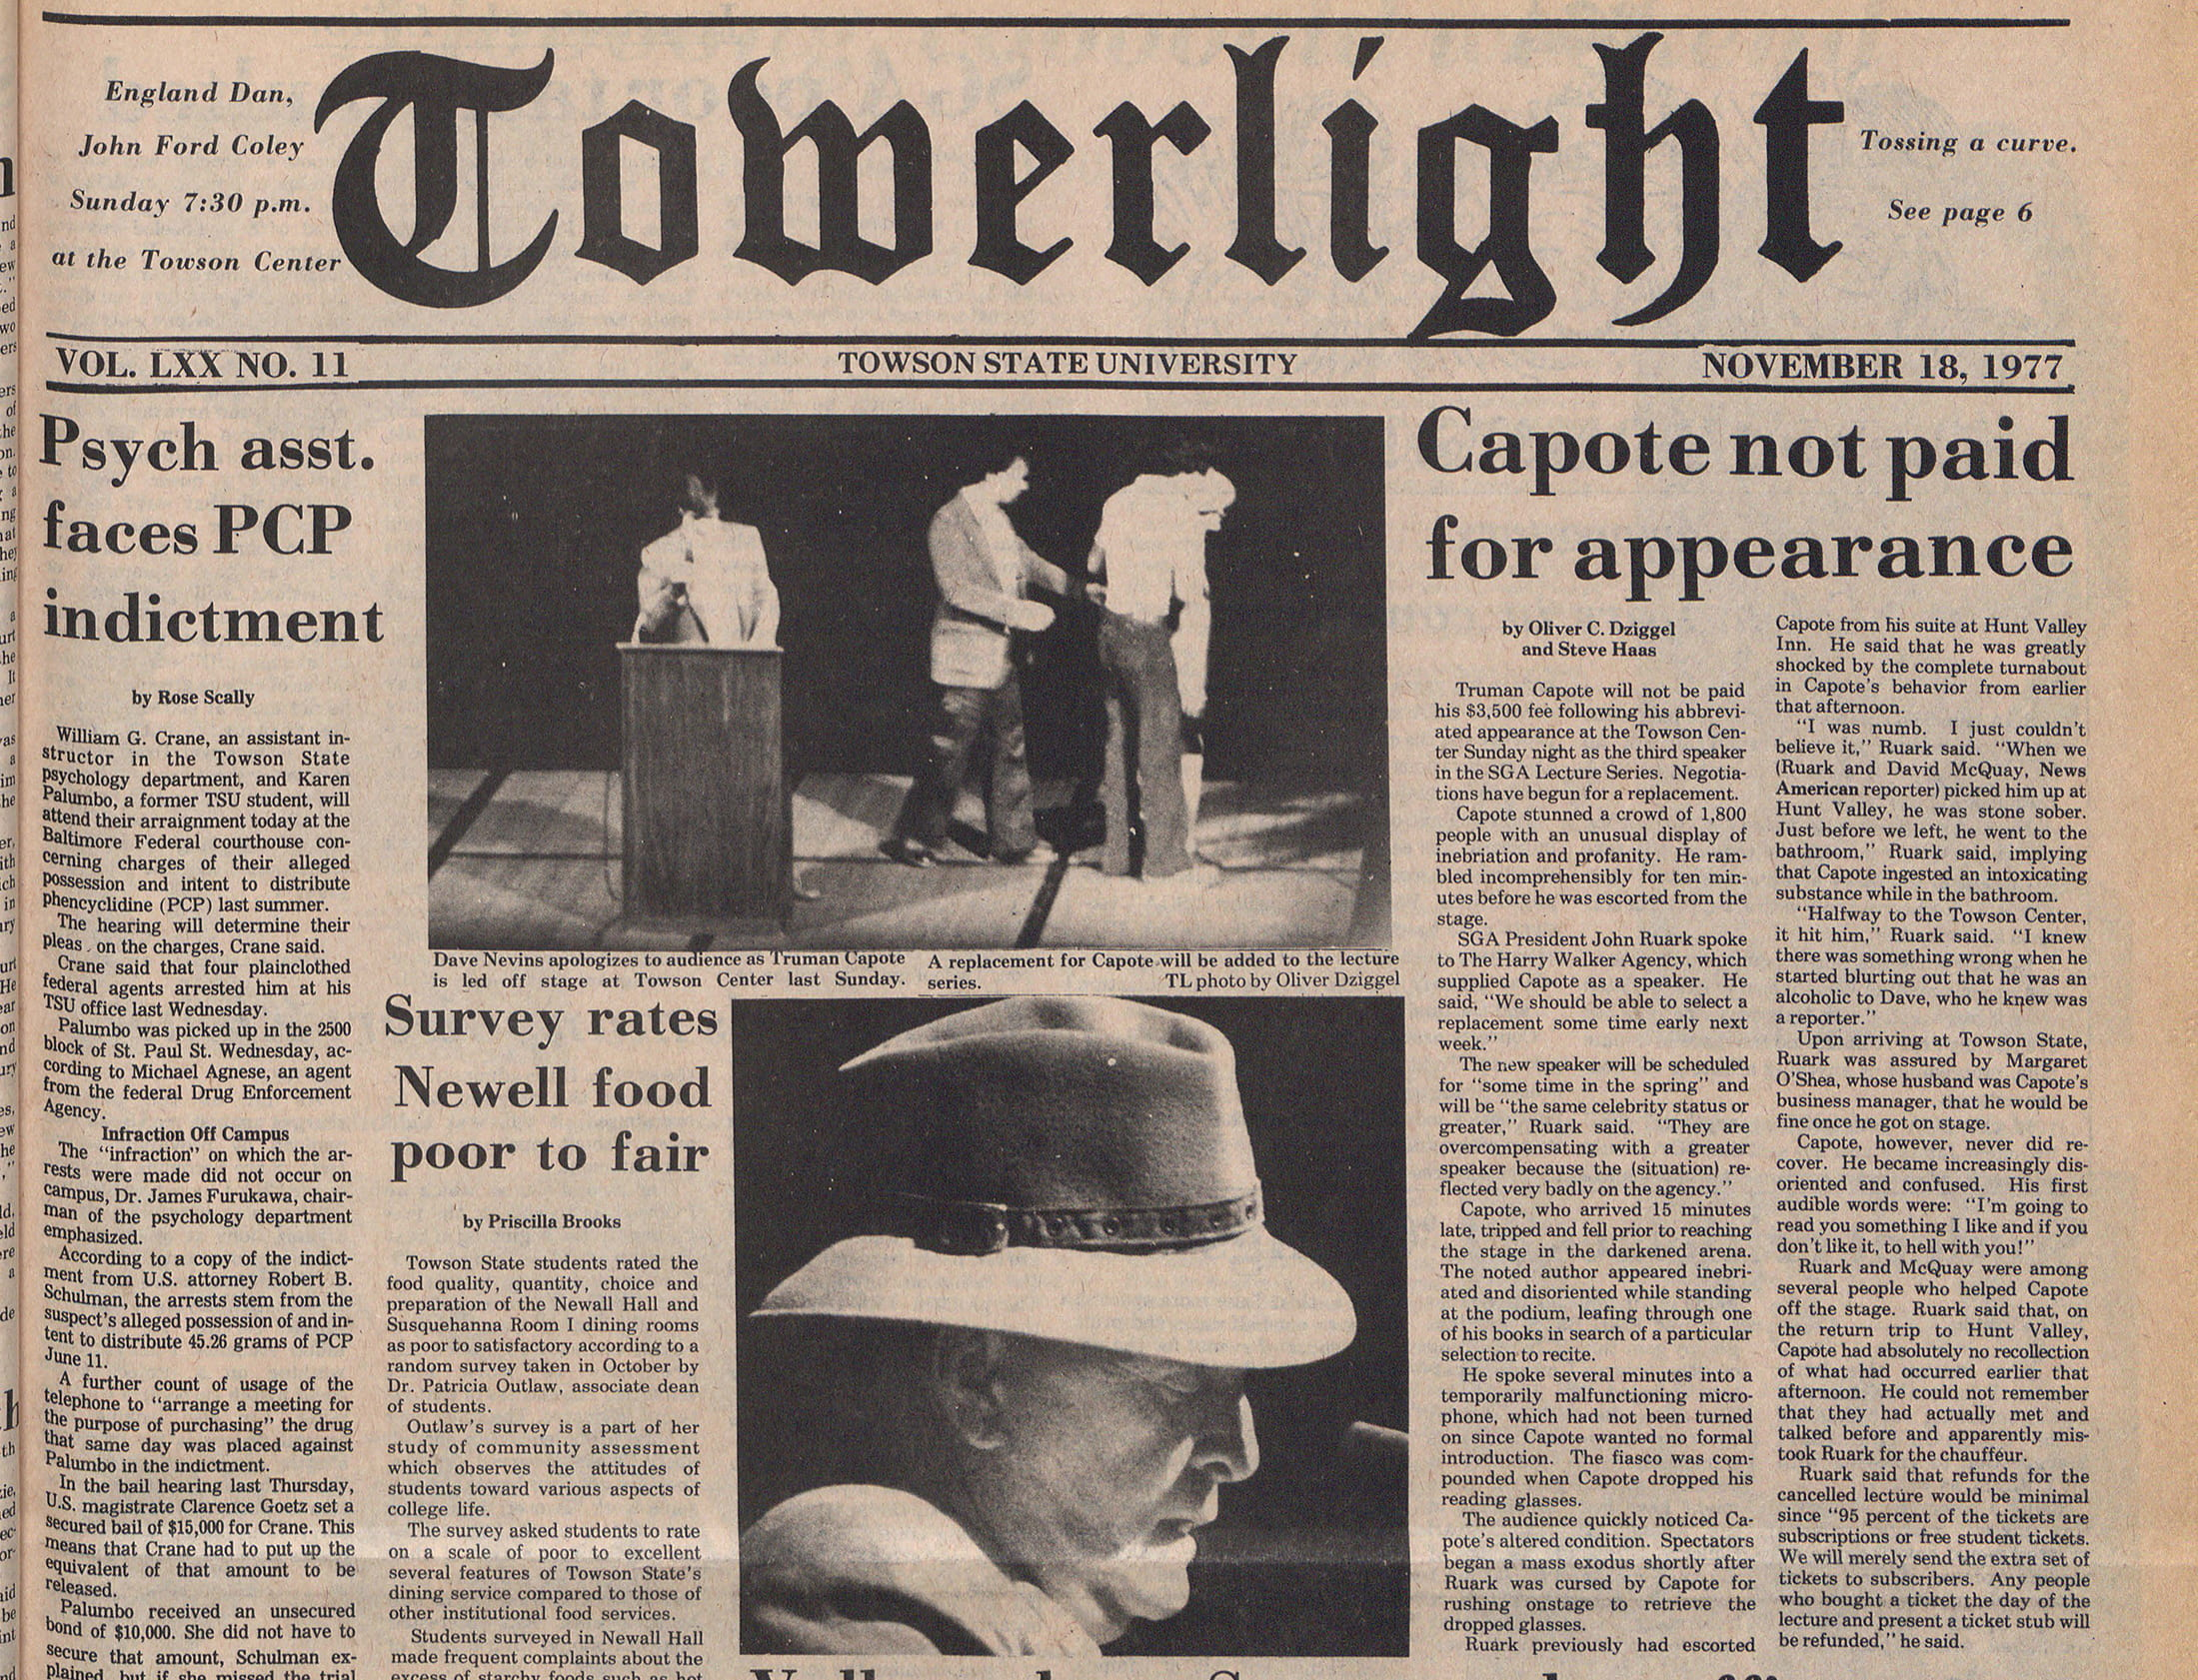 Front of newspaper with photos of Truman Capote being led off stage and reports that he was not paid for his appearance at TSU after arriving incoherent.